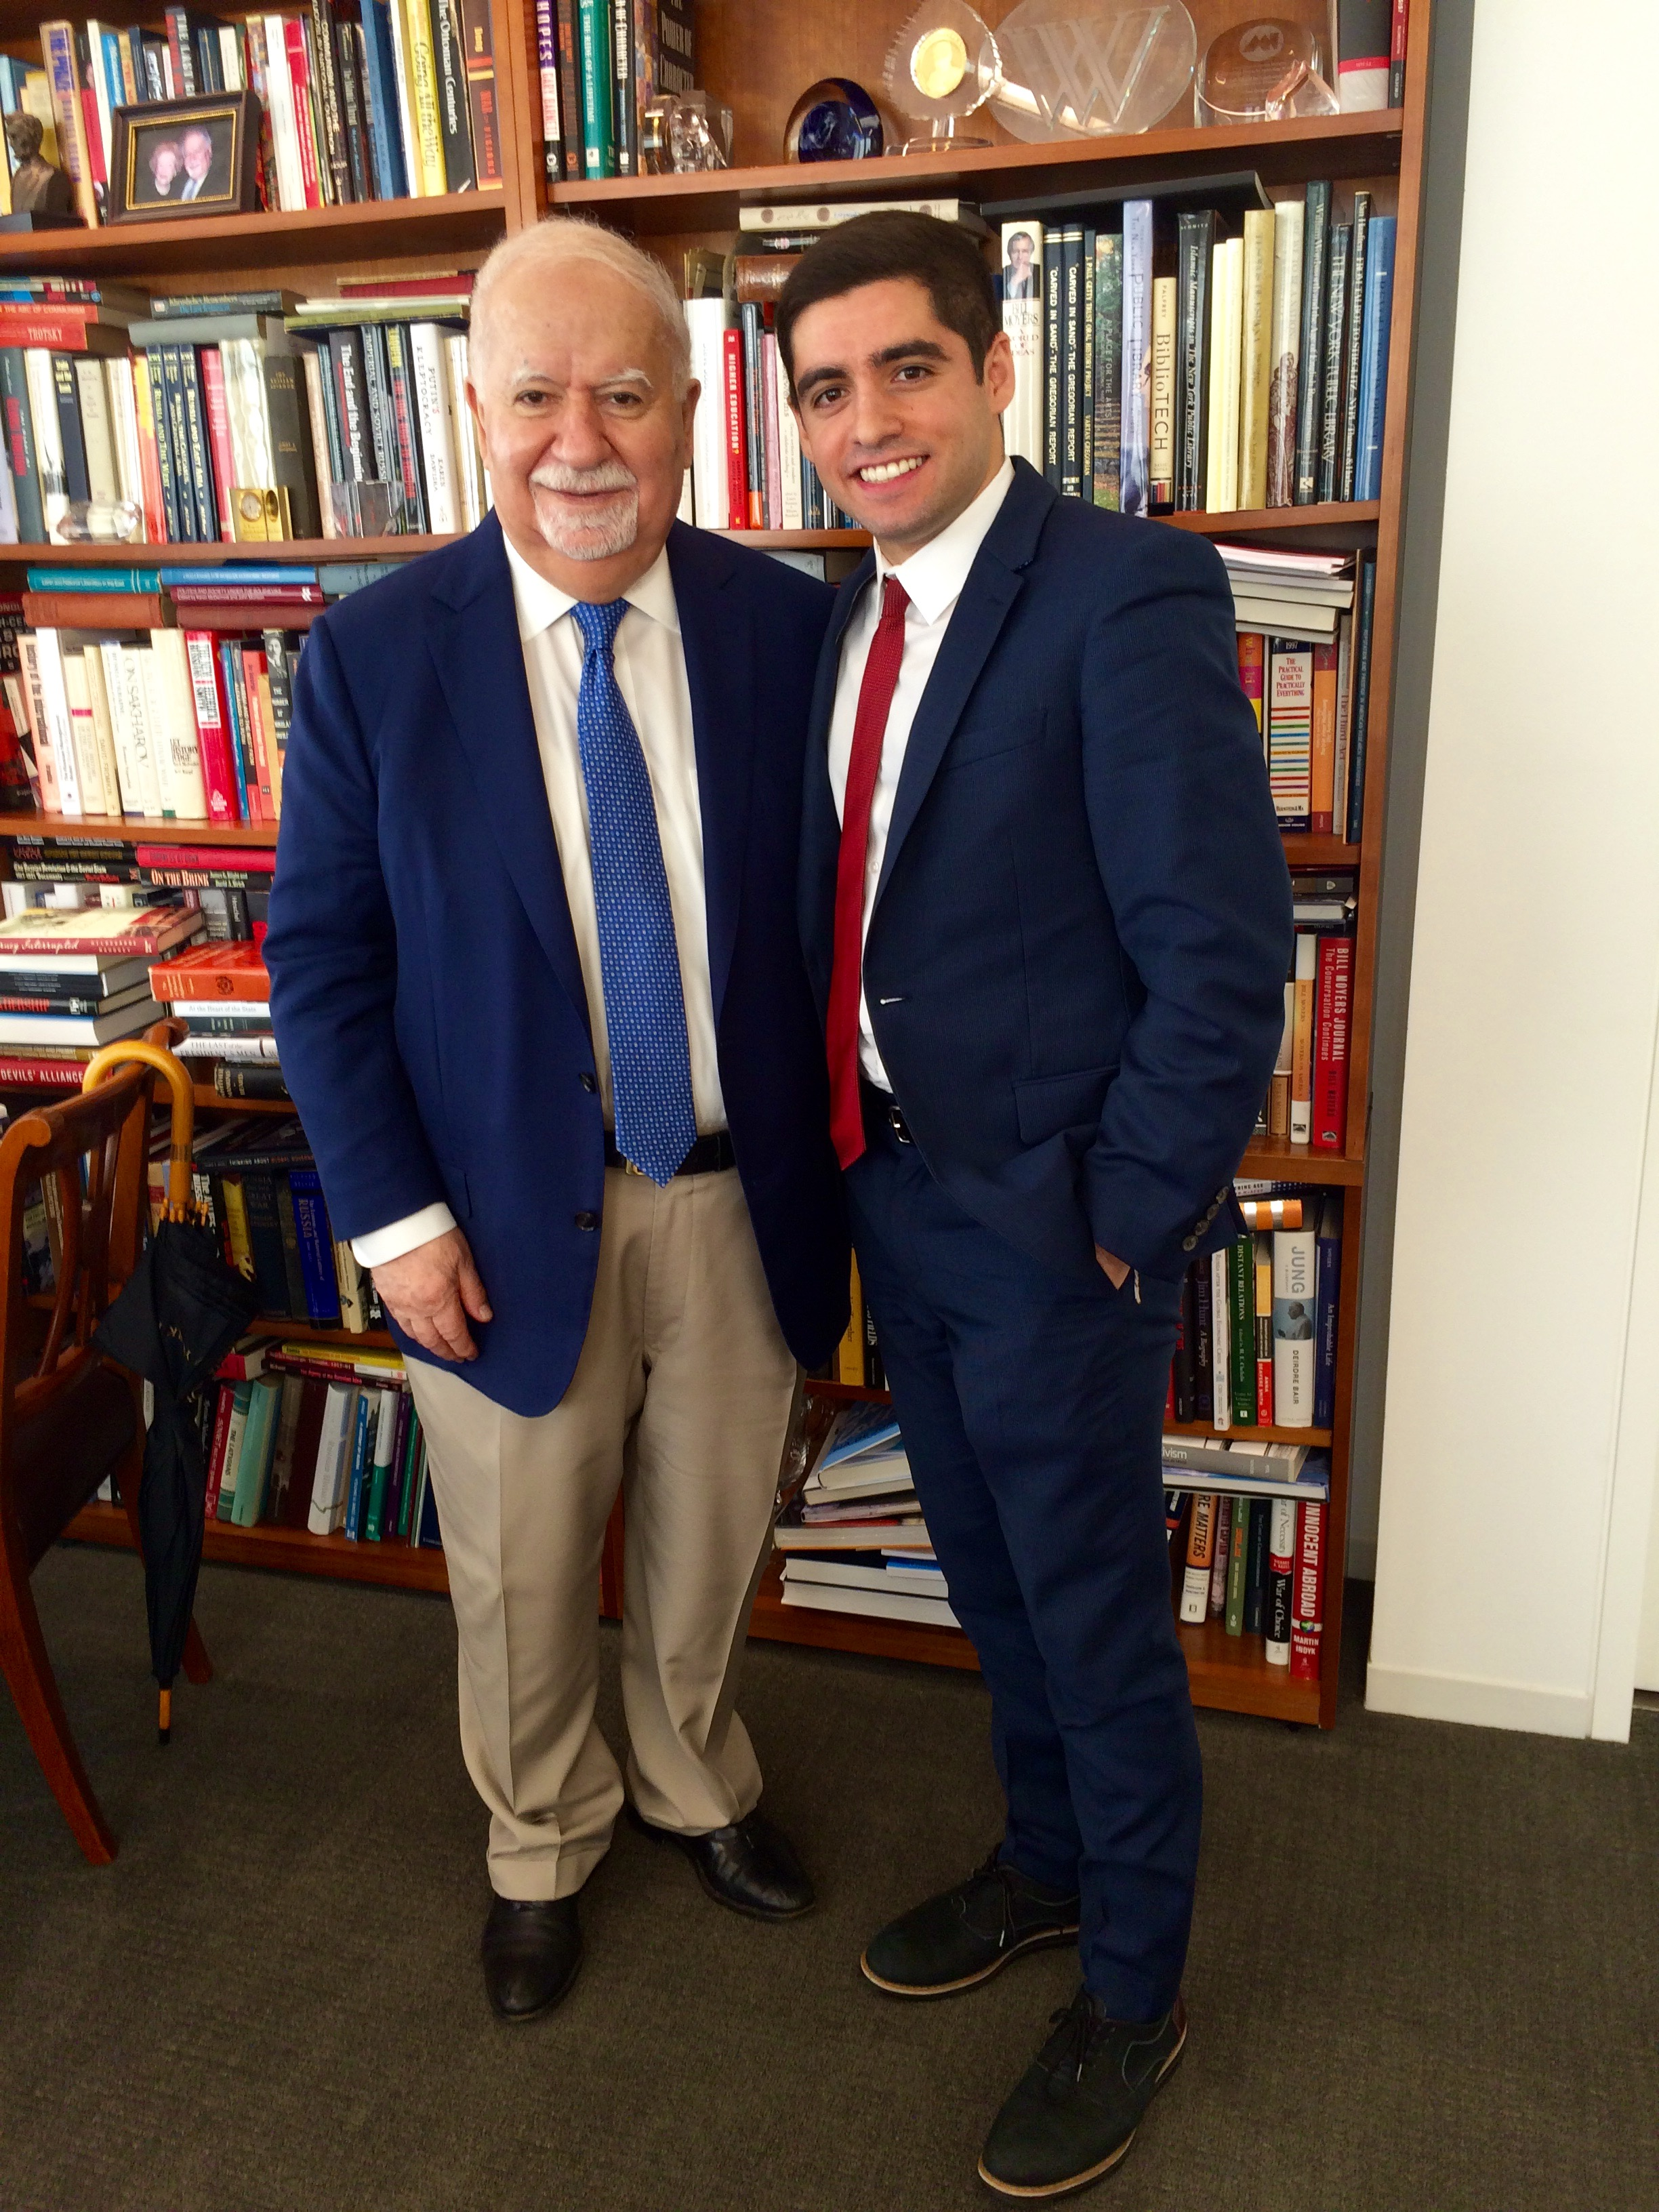 - Dr. Vartan Gregorian (L) of the Carnegie Corporation of New York with Sam Vaghar (R), Executive Director of MCN.Dr. Gregorian inspired the inclusion of student leaders on the MCN Global Education Council alongside university presidents and administrators; he cited a need for joint ownership in scaling this global network.